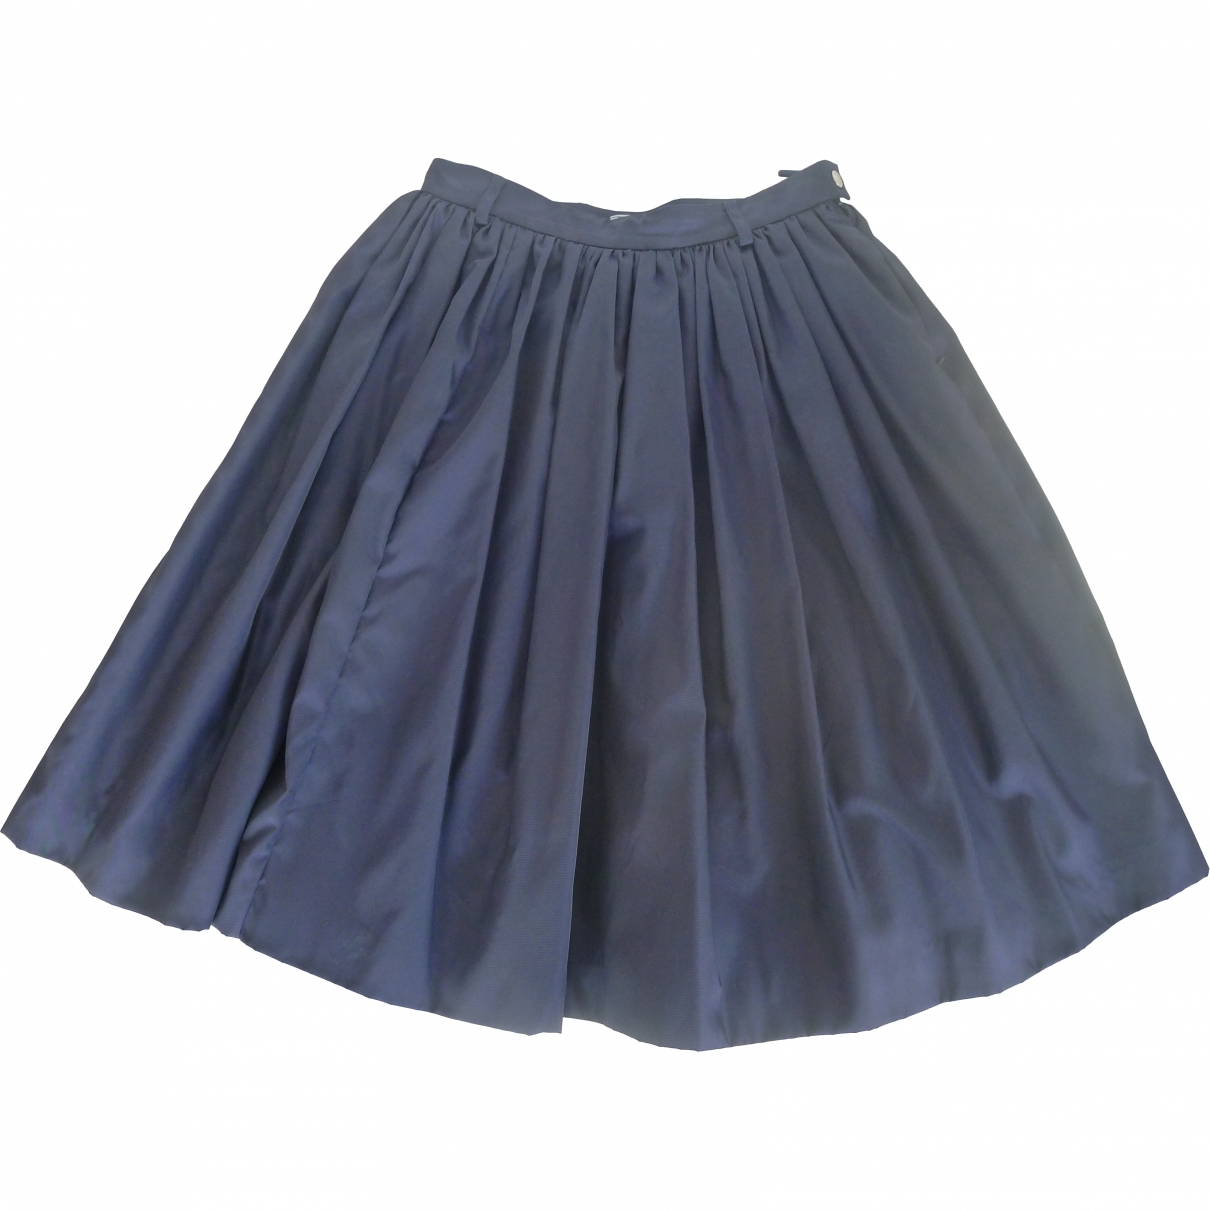 Prada \N Blue skirt for Women 42 IT